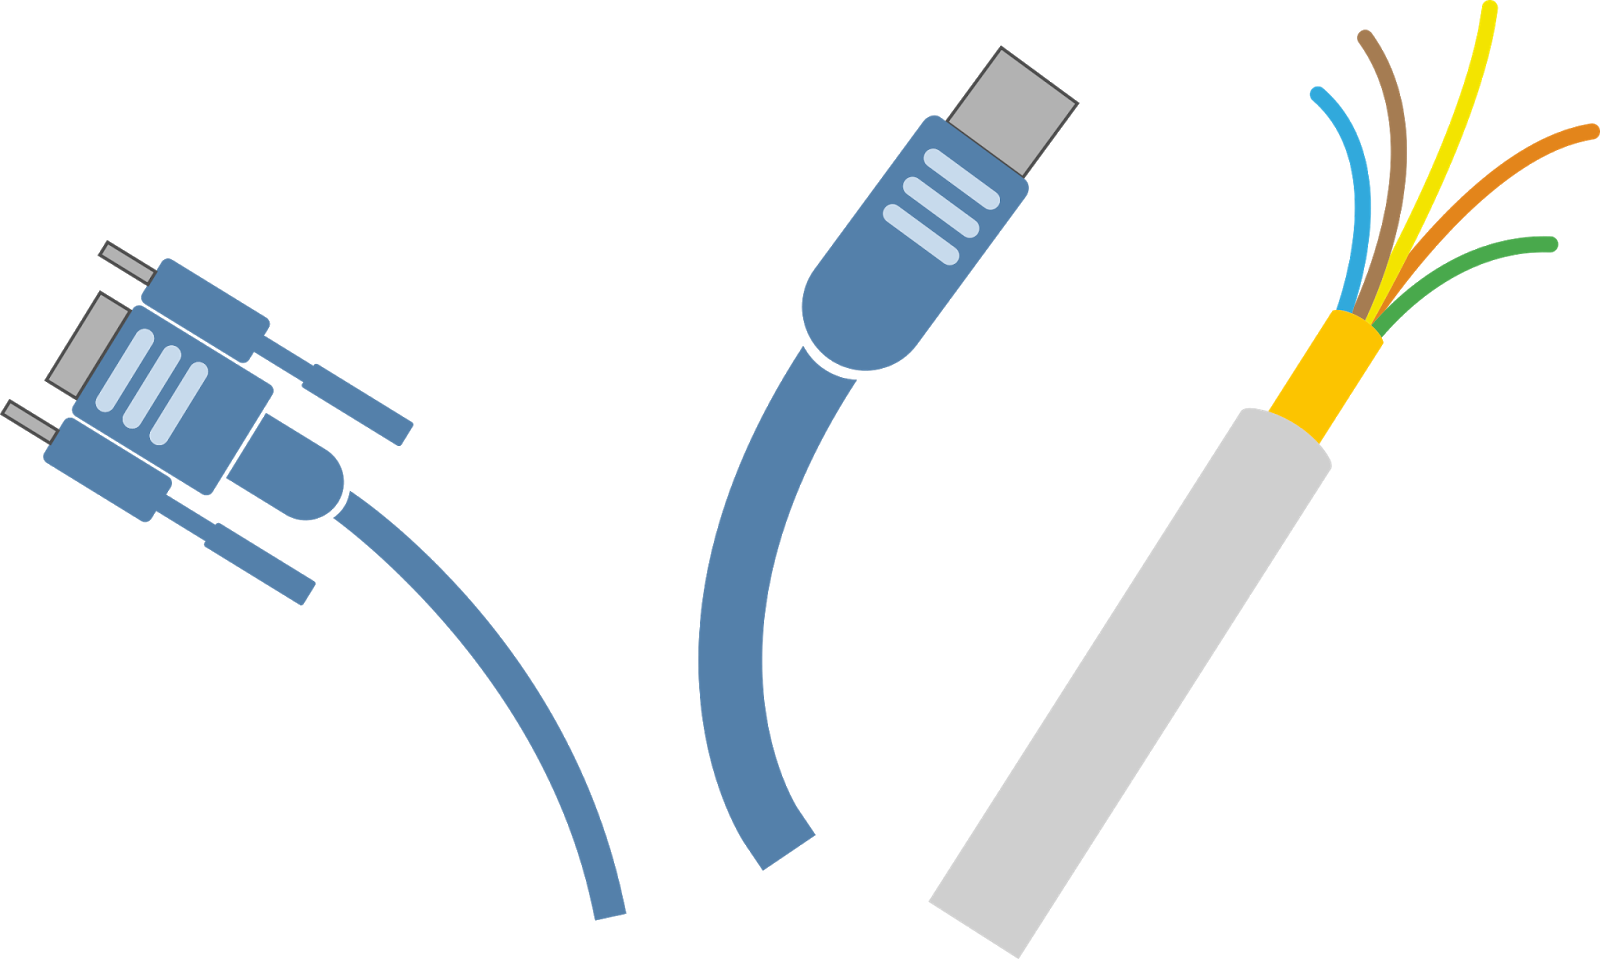 Computer wires png. Neskeb cables learn how